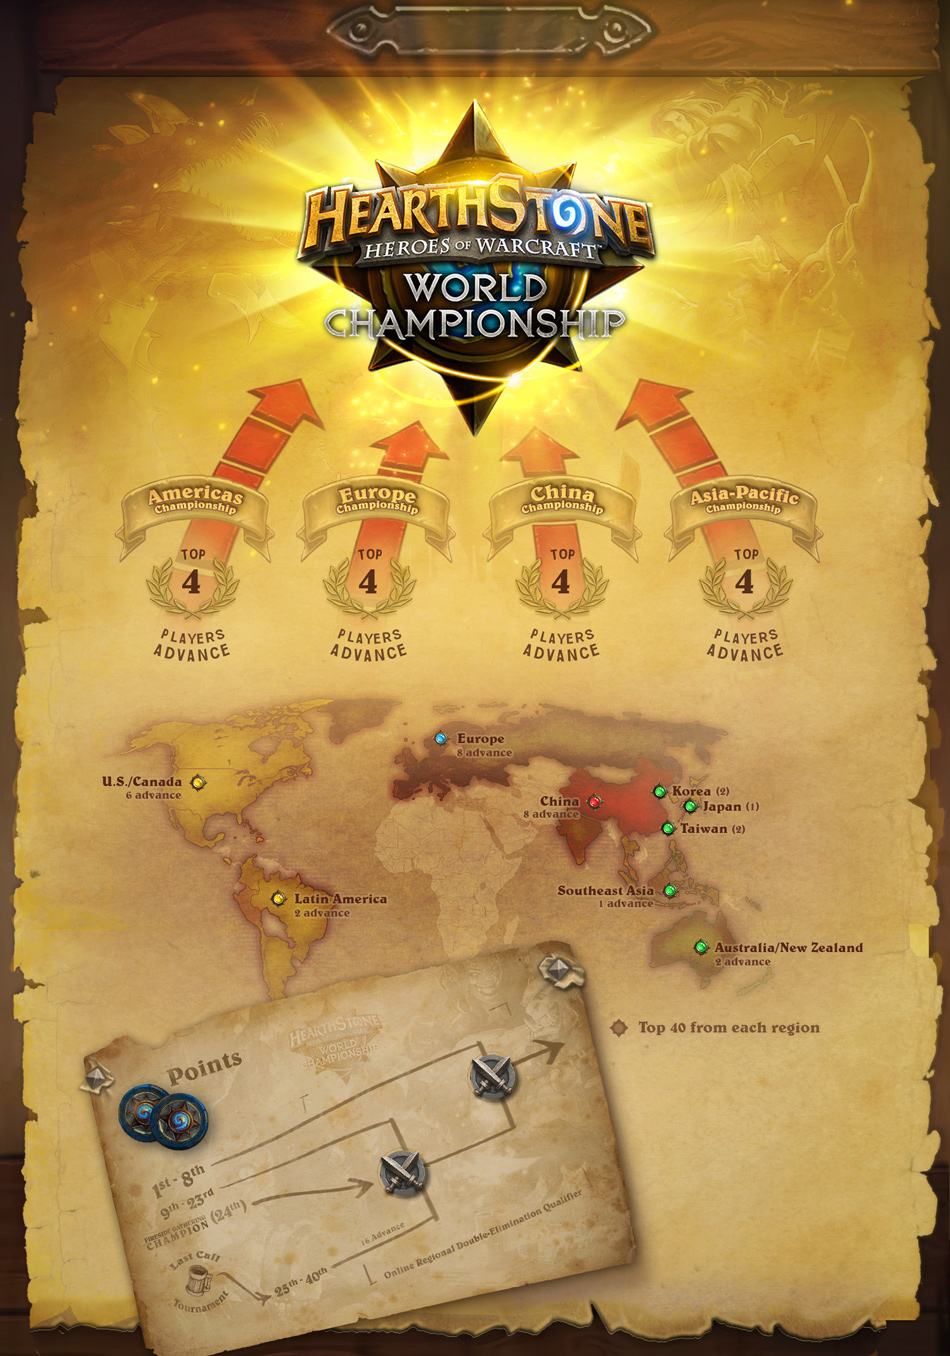 HeartStone world Champs 2015 chart